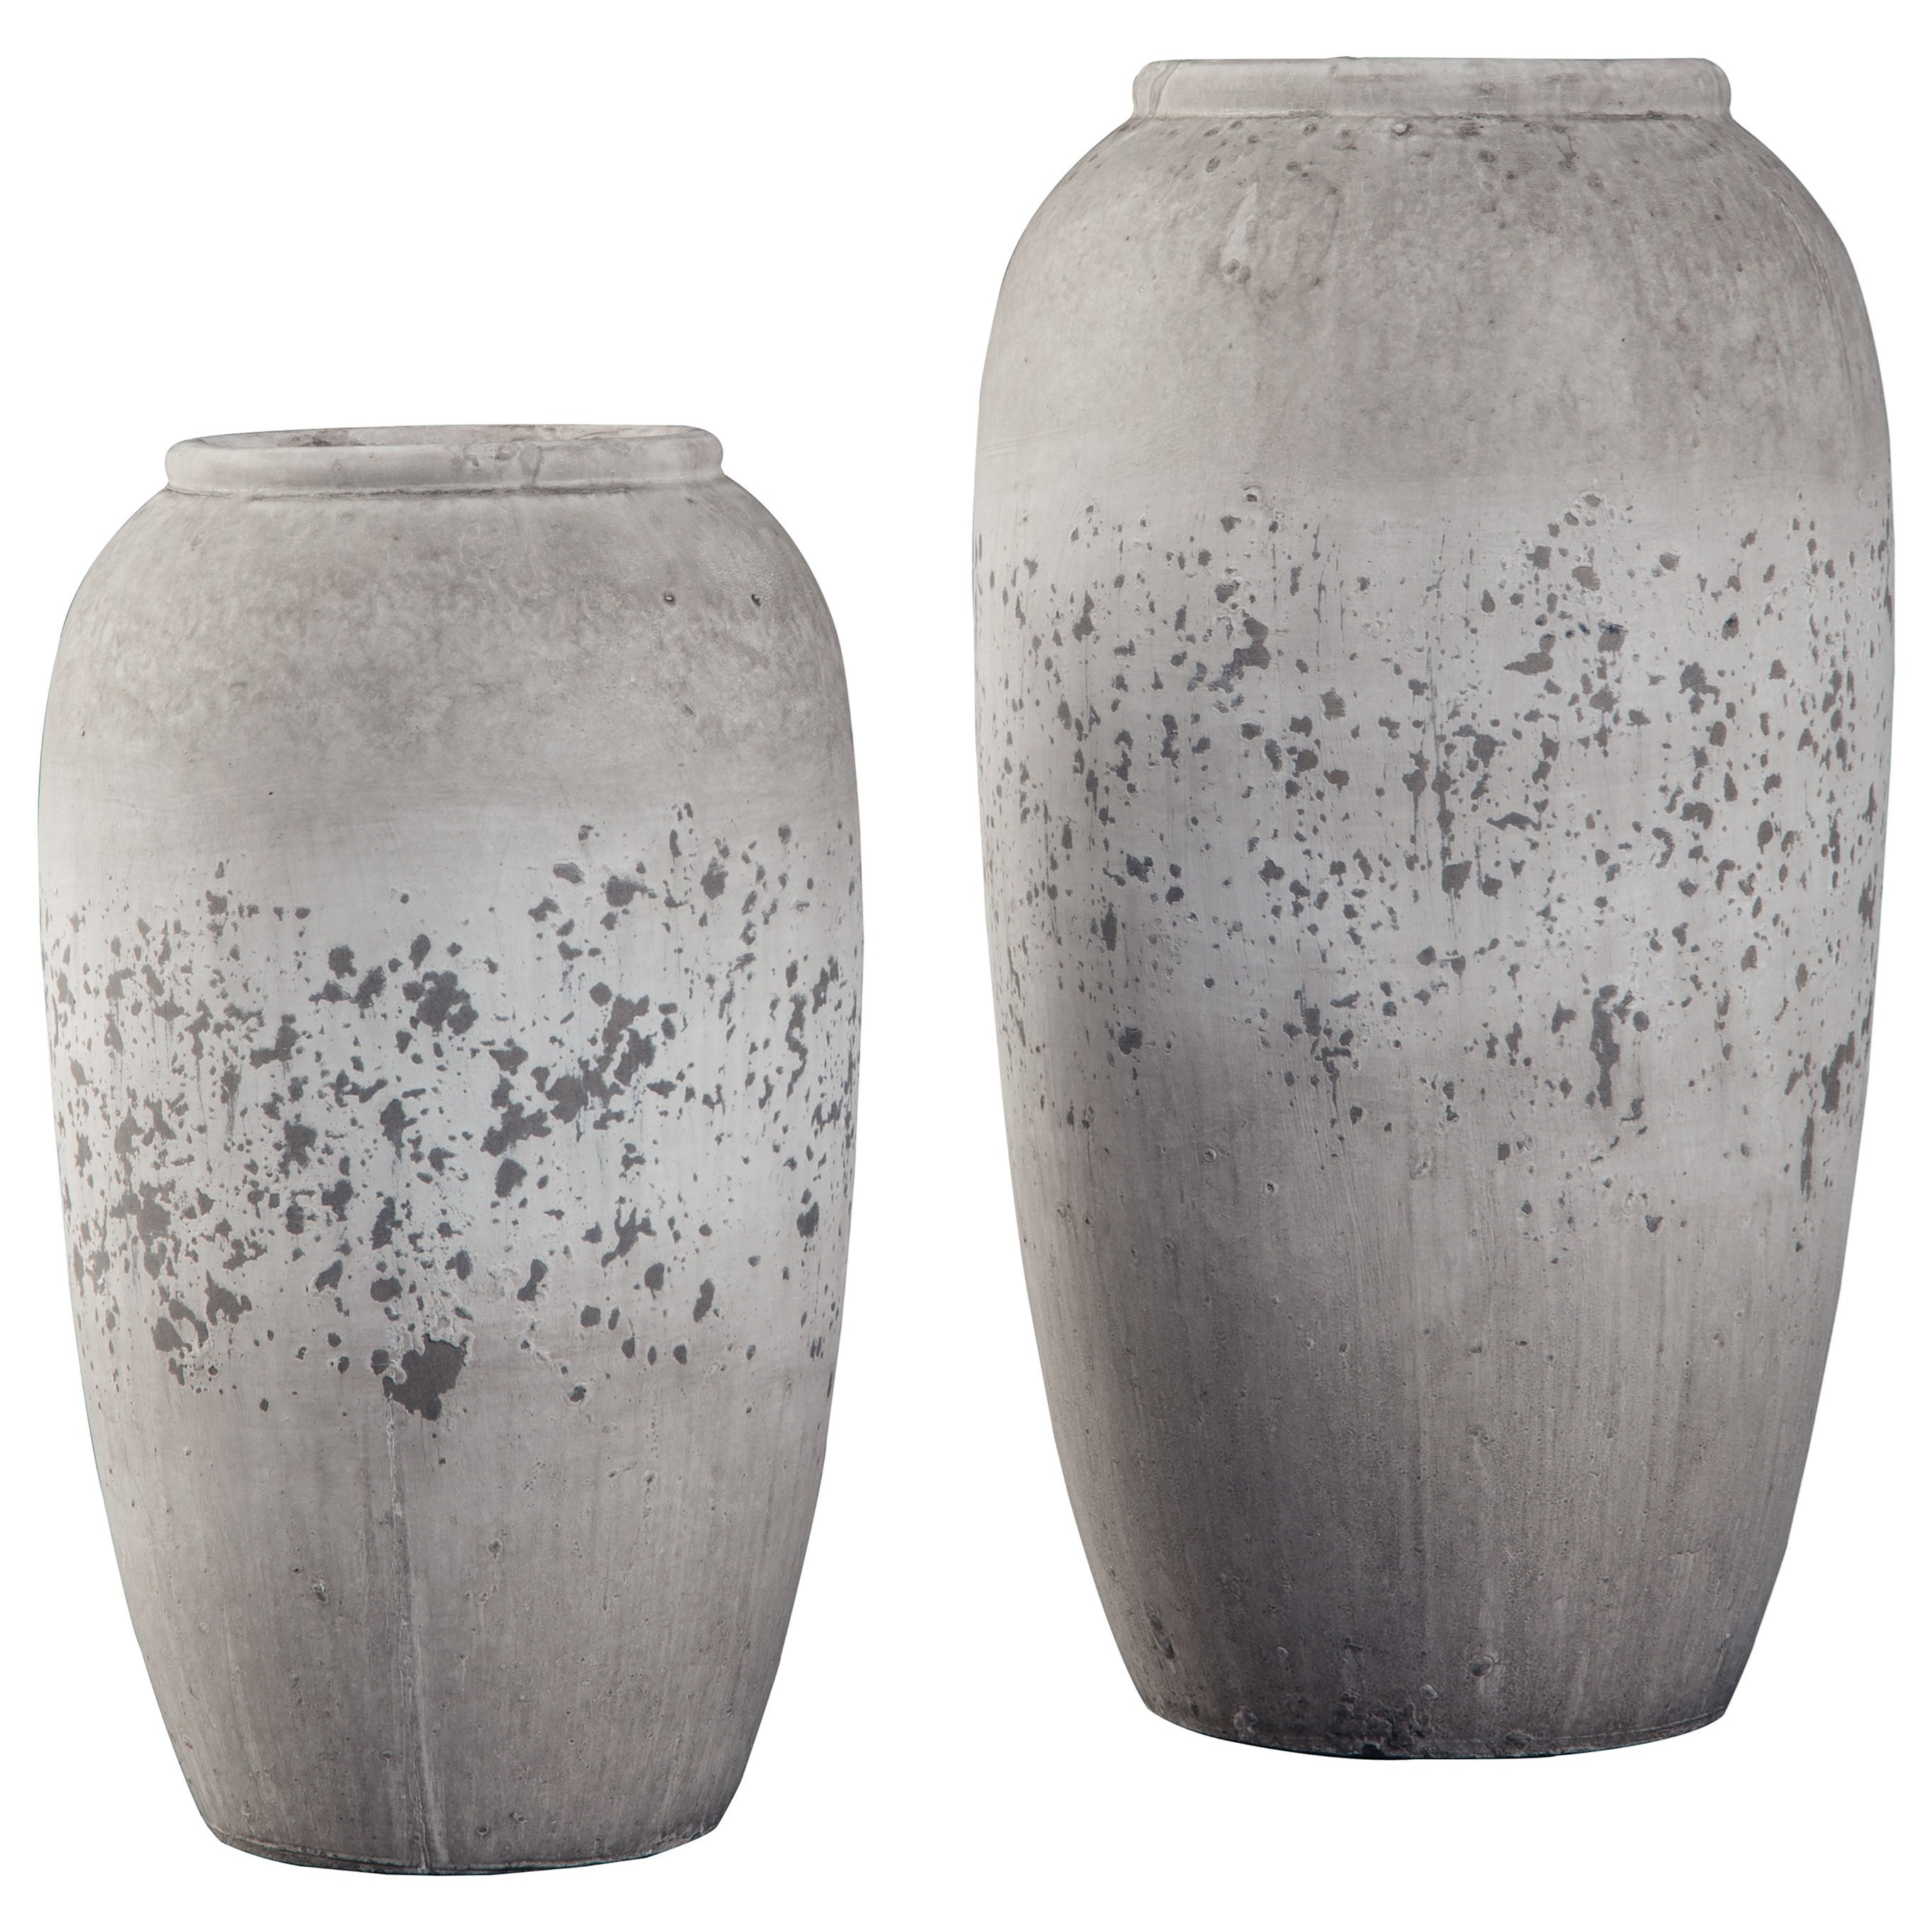 Accents Dimitra Brown/Cream Vase Set by Signature Design by Ashley at Zak's Warehouse Clearance Center